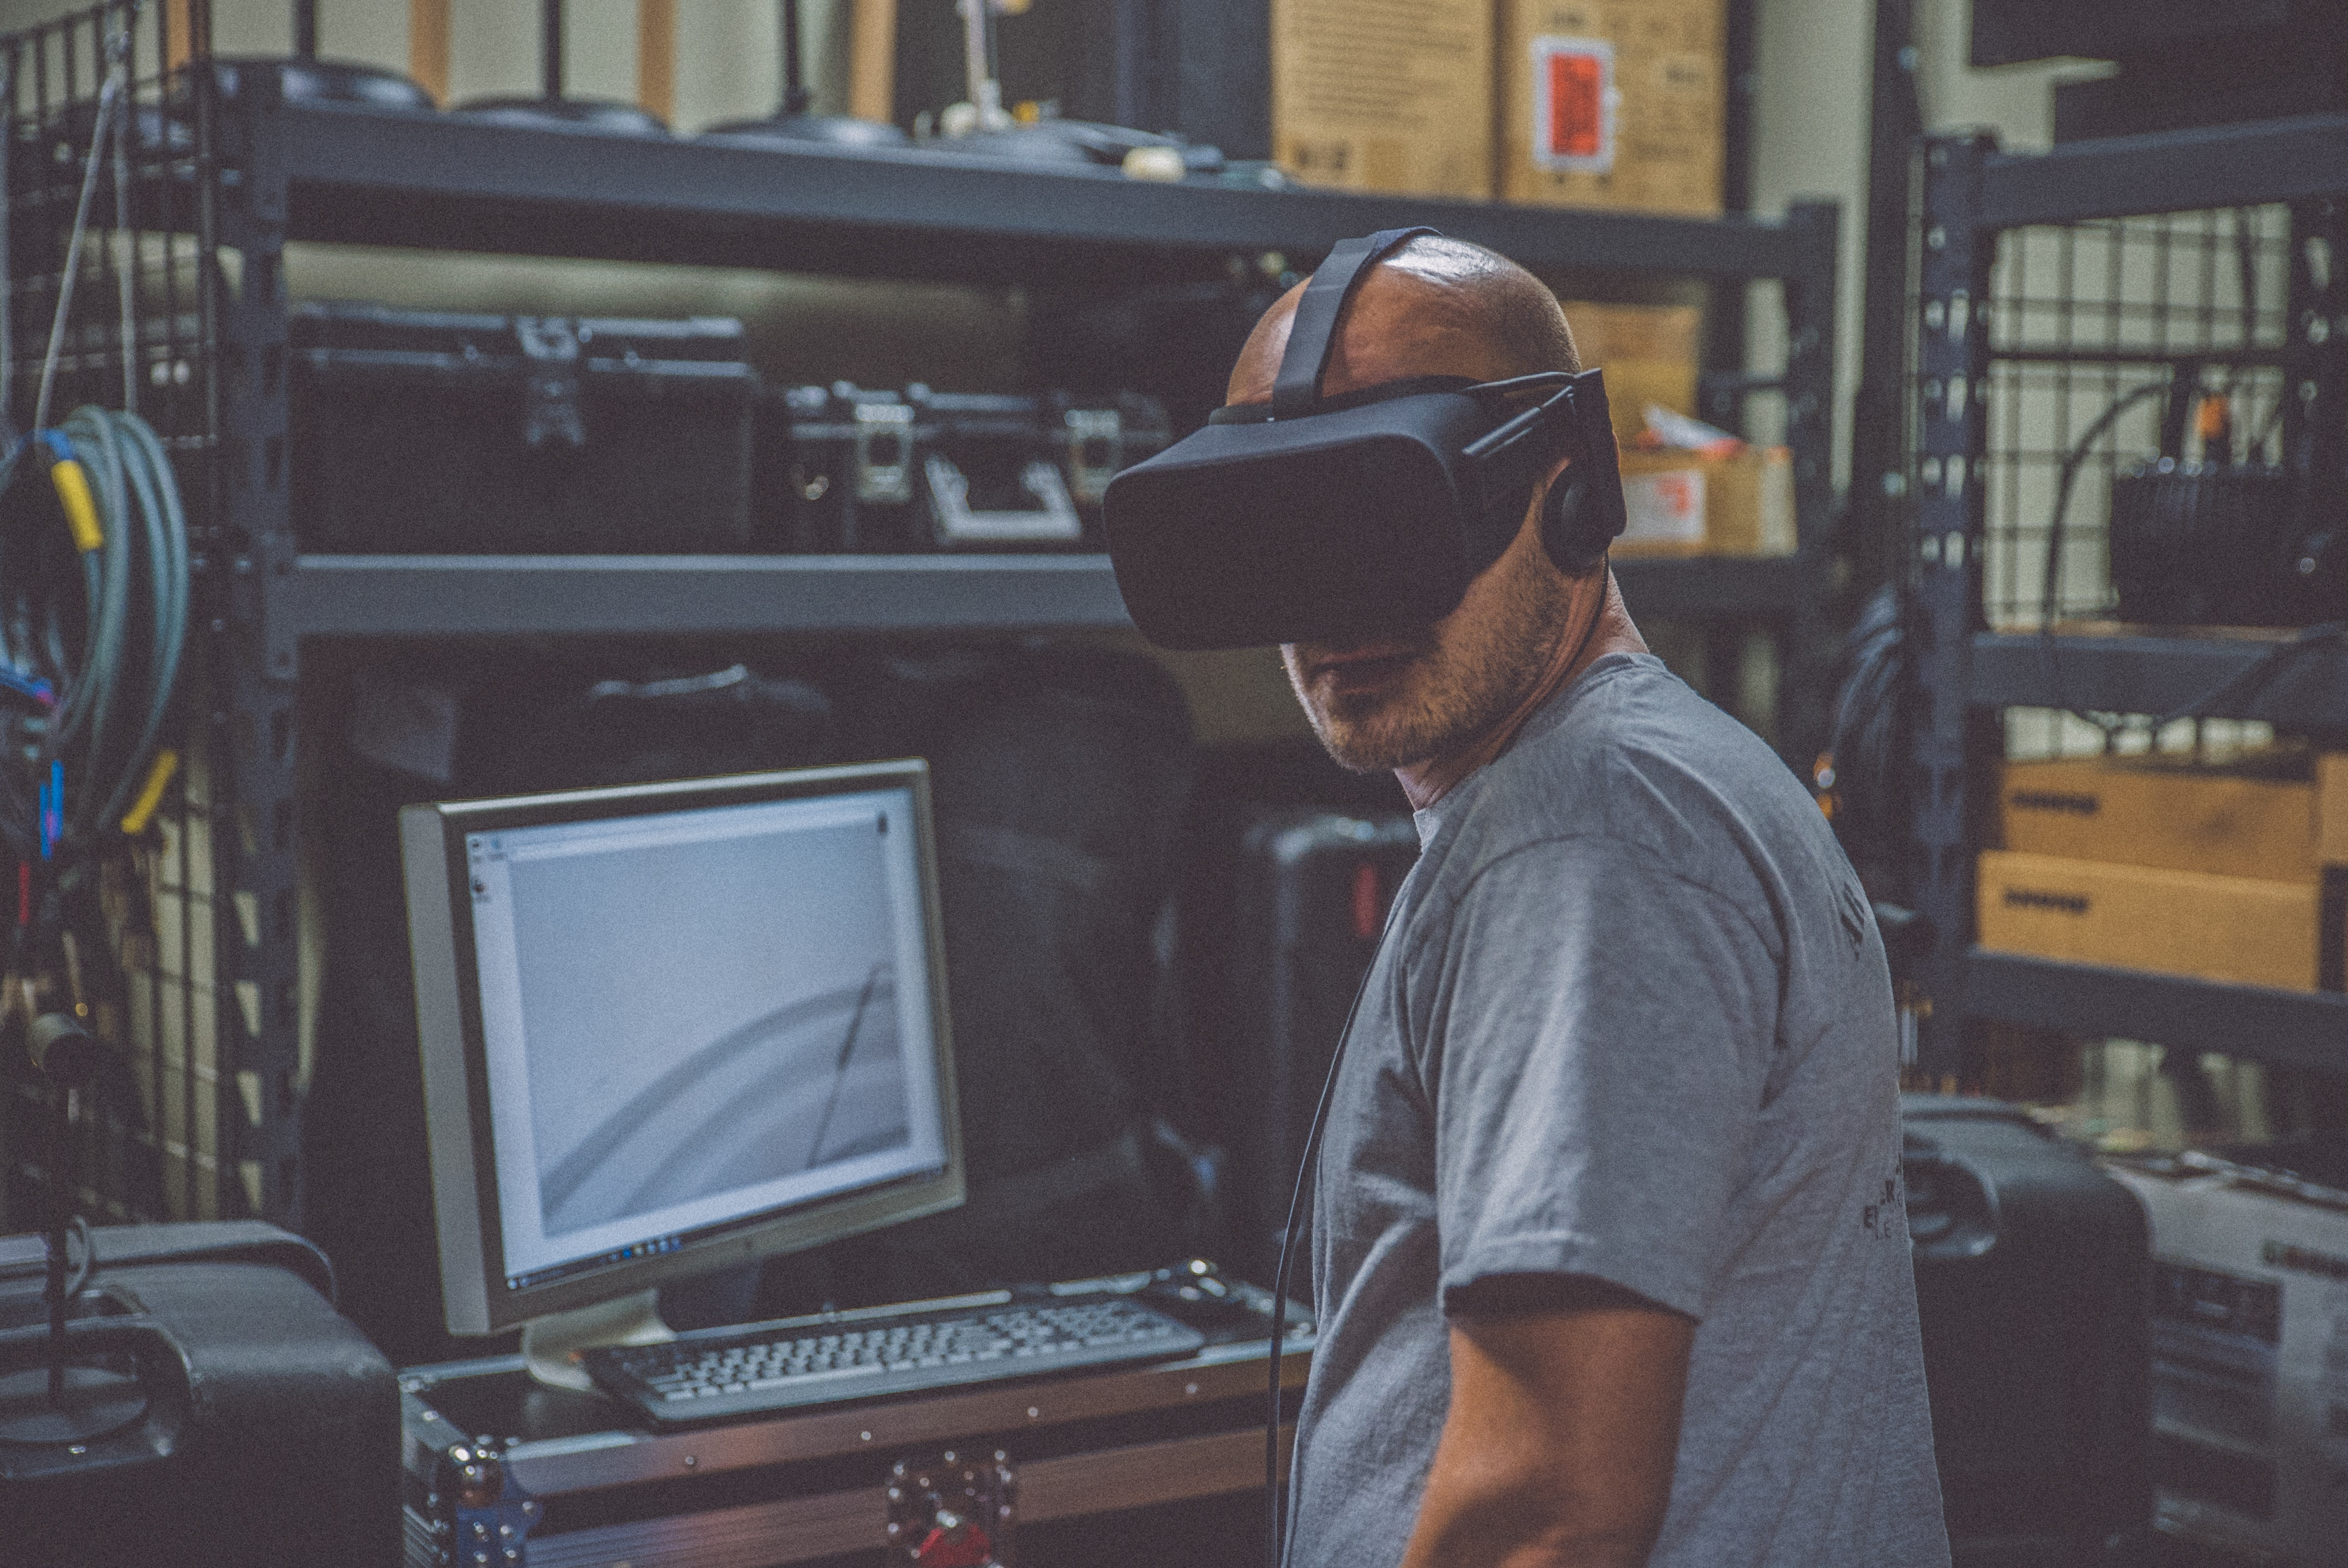 Read more about the article Charlie Fink Writes About VR Training Next Generation of Workers